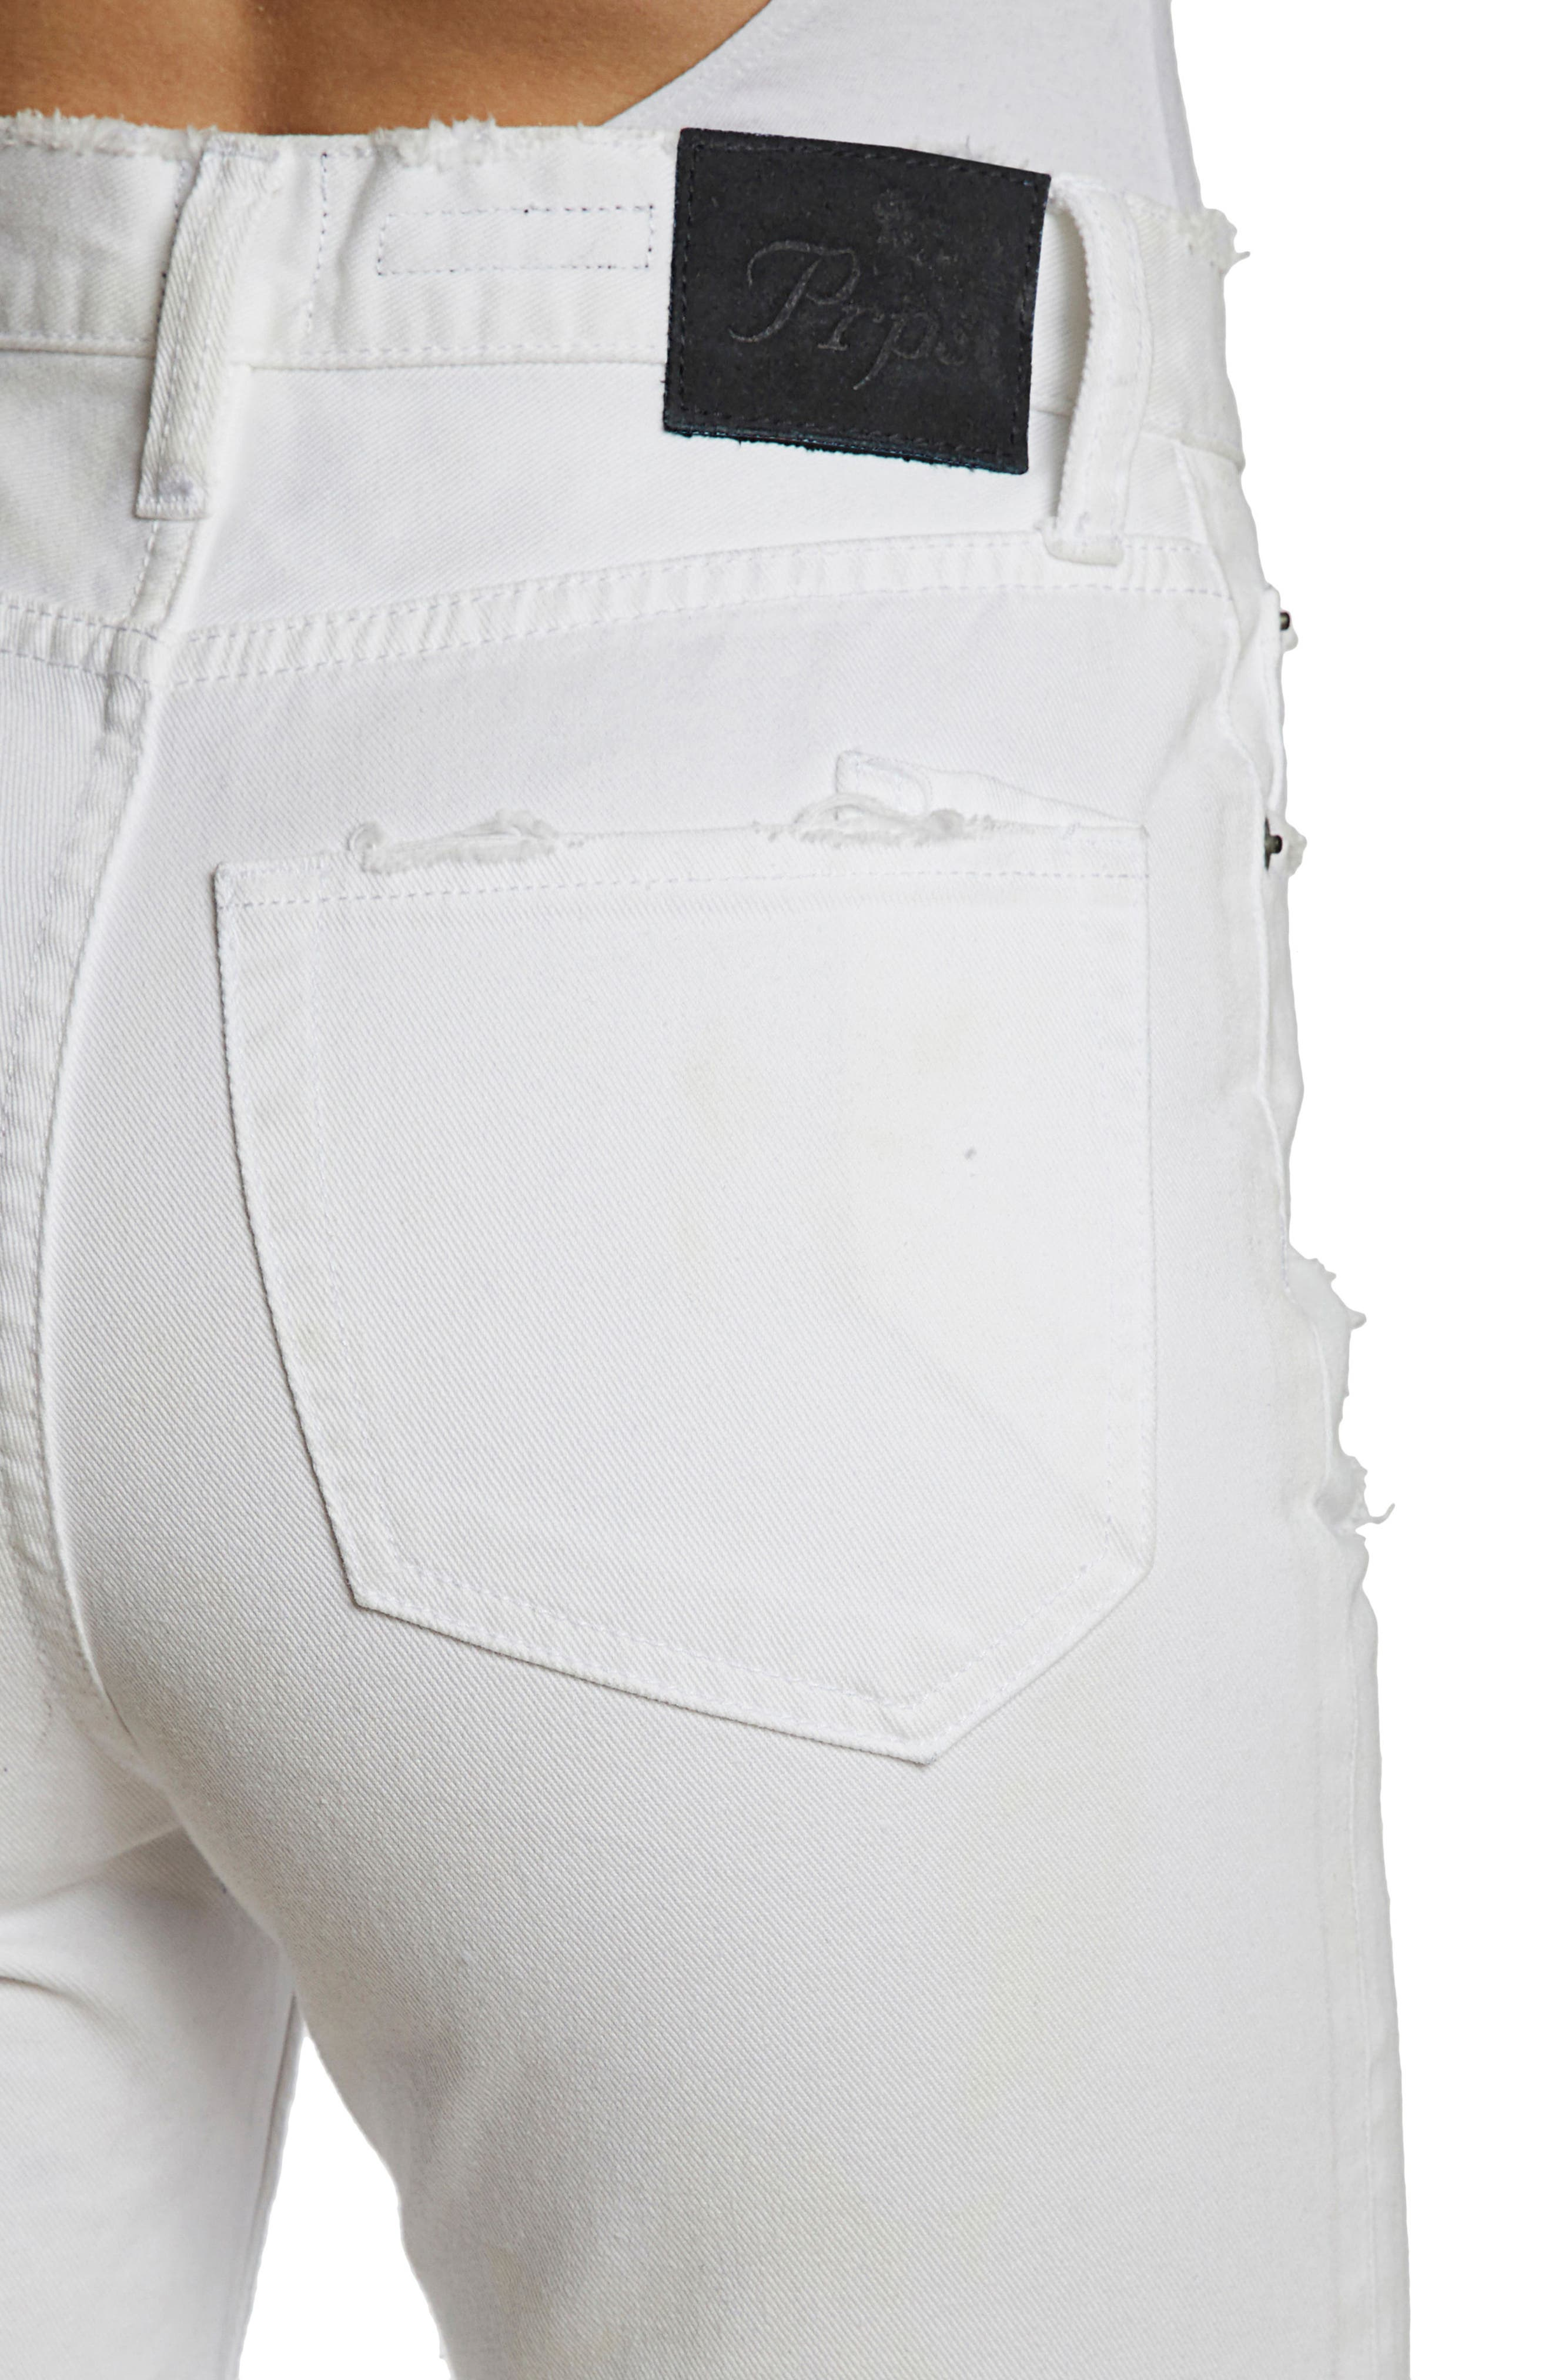 AMX Distressed High Waist Released Hem Ankle Jeans,                             Alternate thumbnail 4, color,                             White